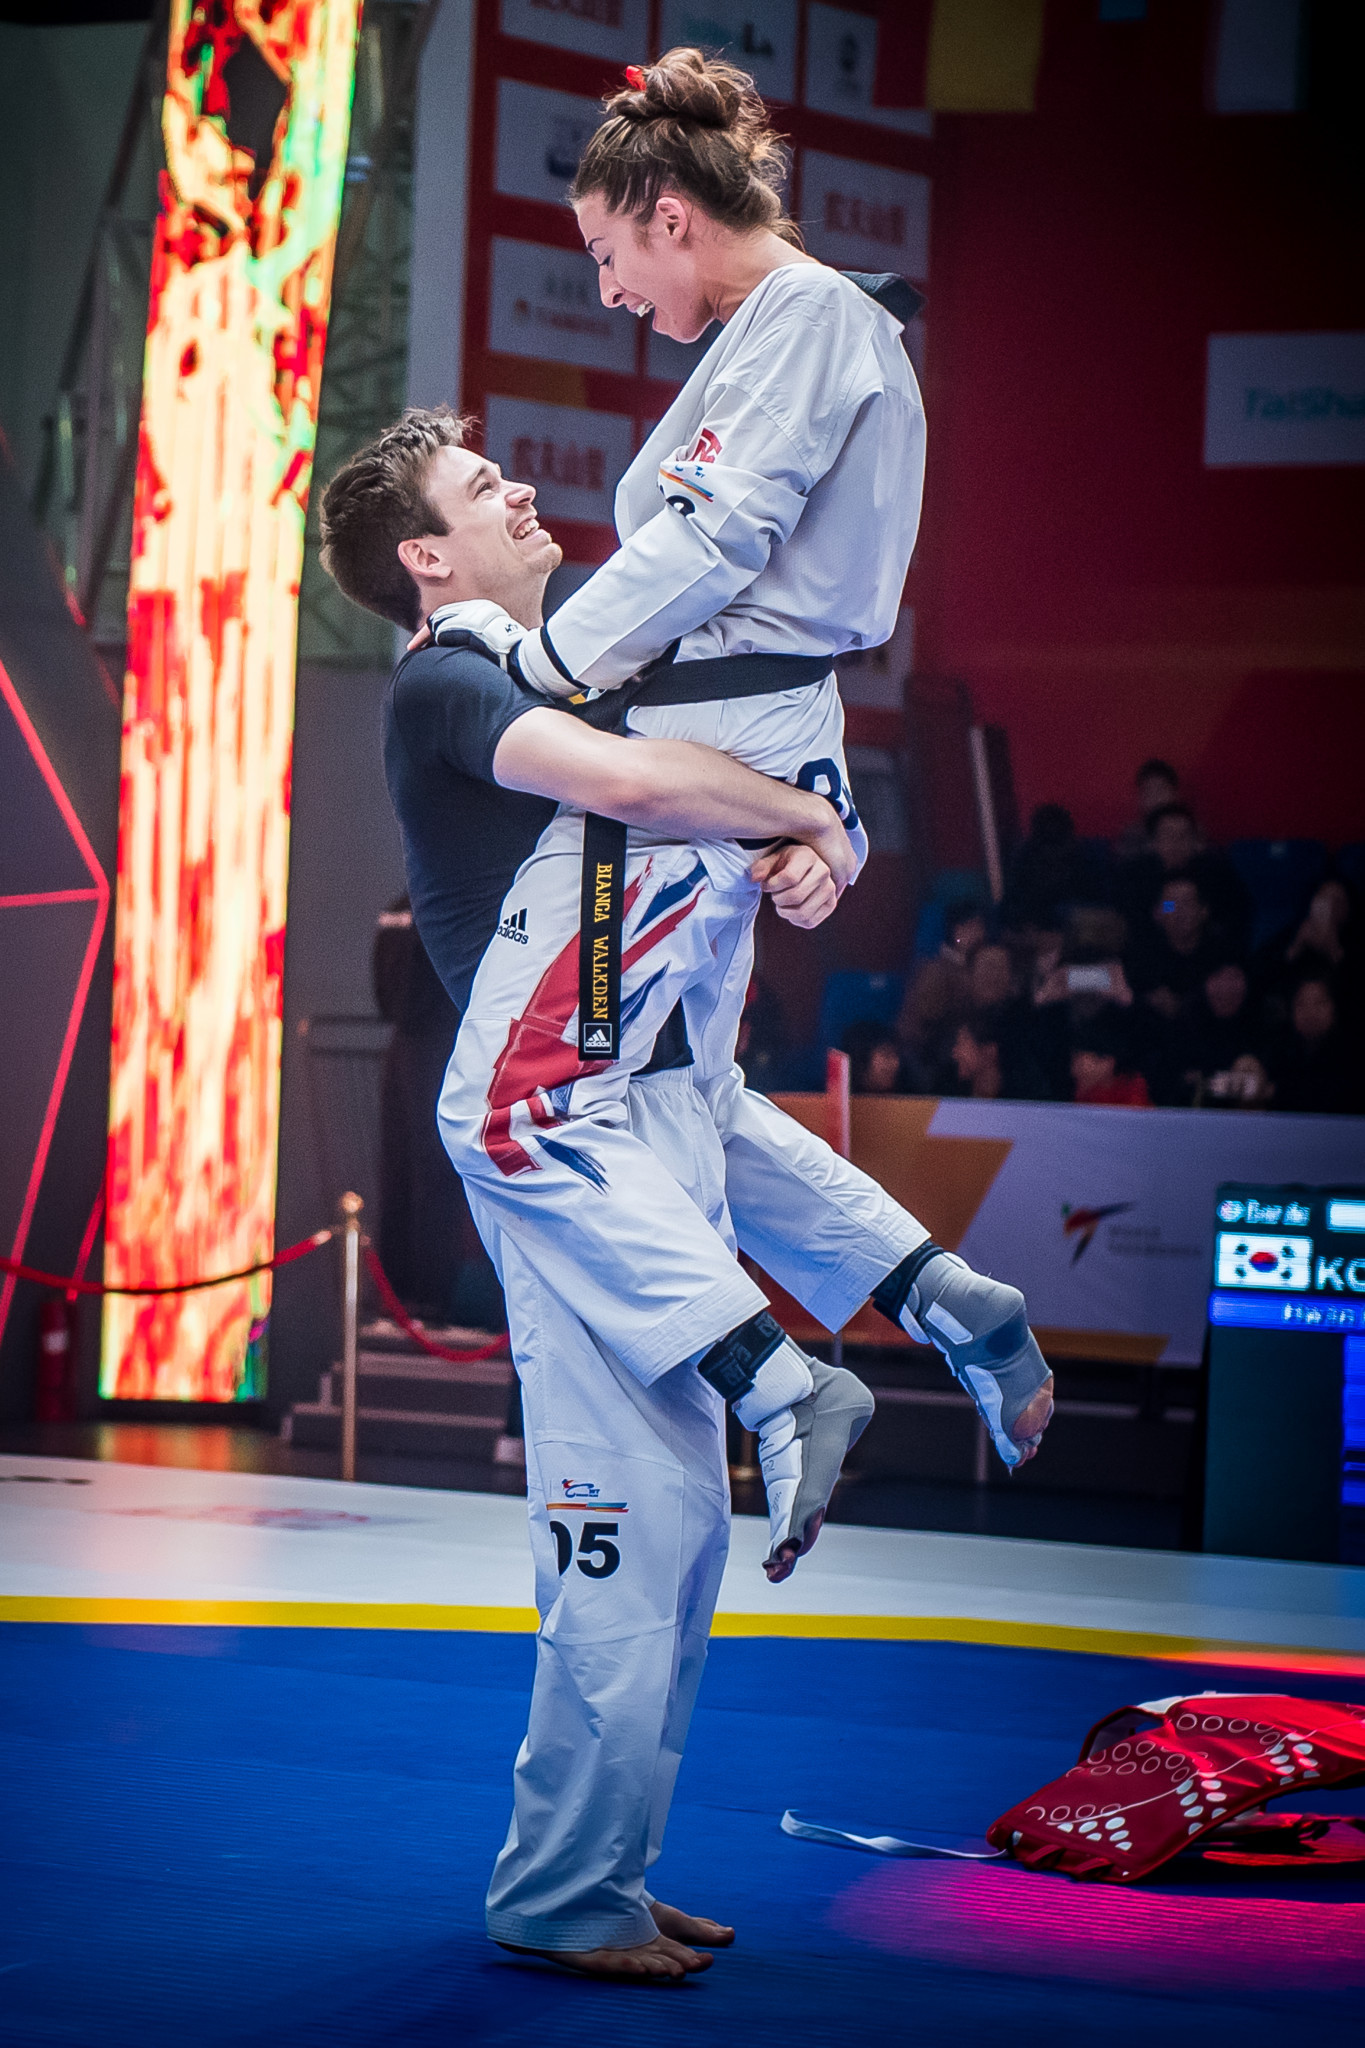 The 26-year-old celebrated with long-term boyfriend Aaron Cook, who fought for Moldova in the men's under 80kg category today ©World Taekwondo